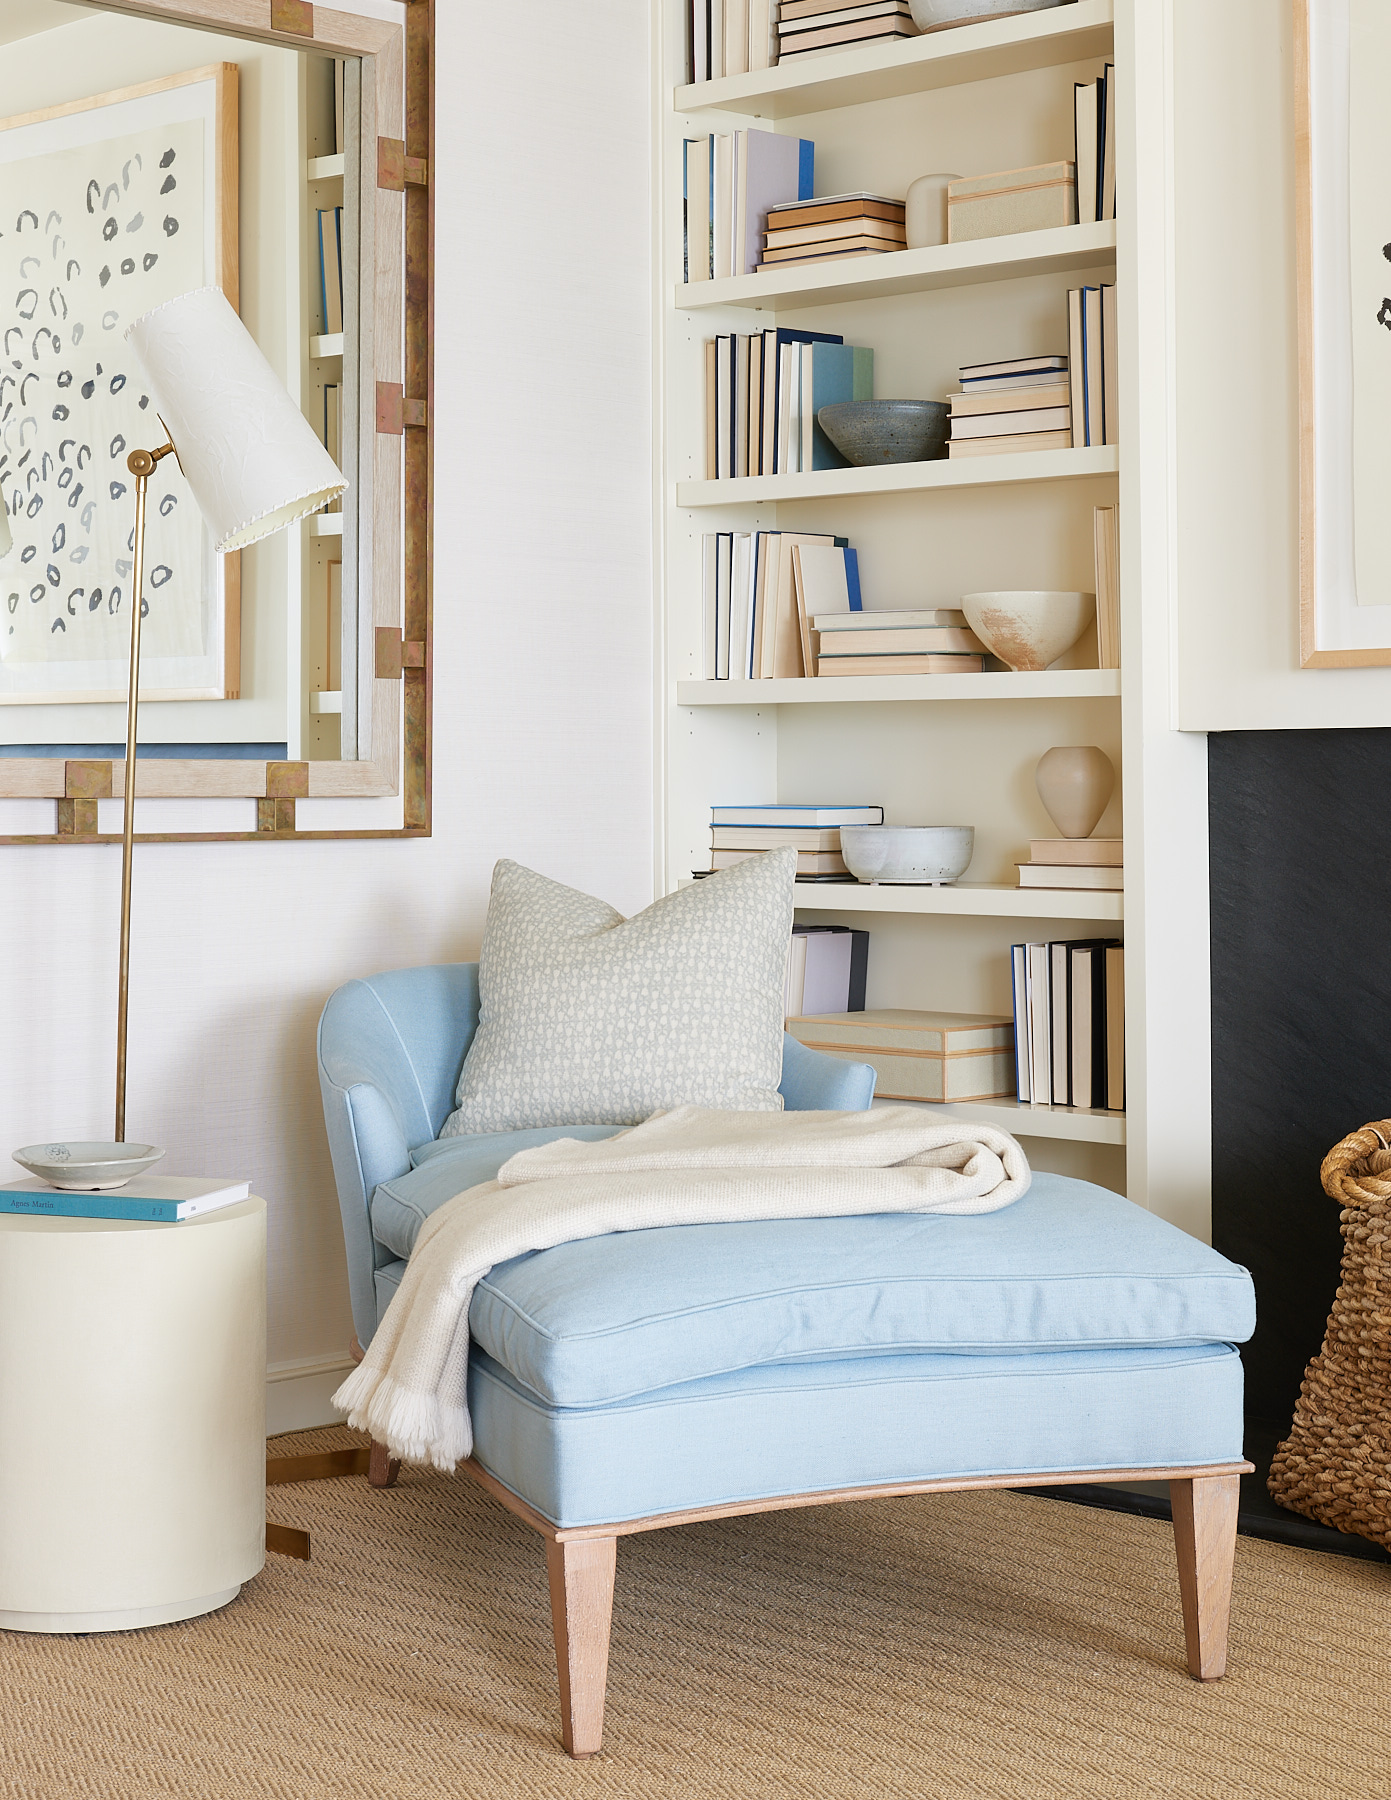 Baby blue chaise lounge and patterned pillow